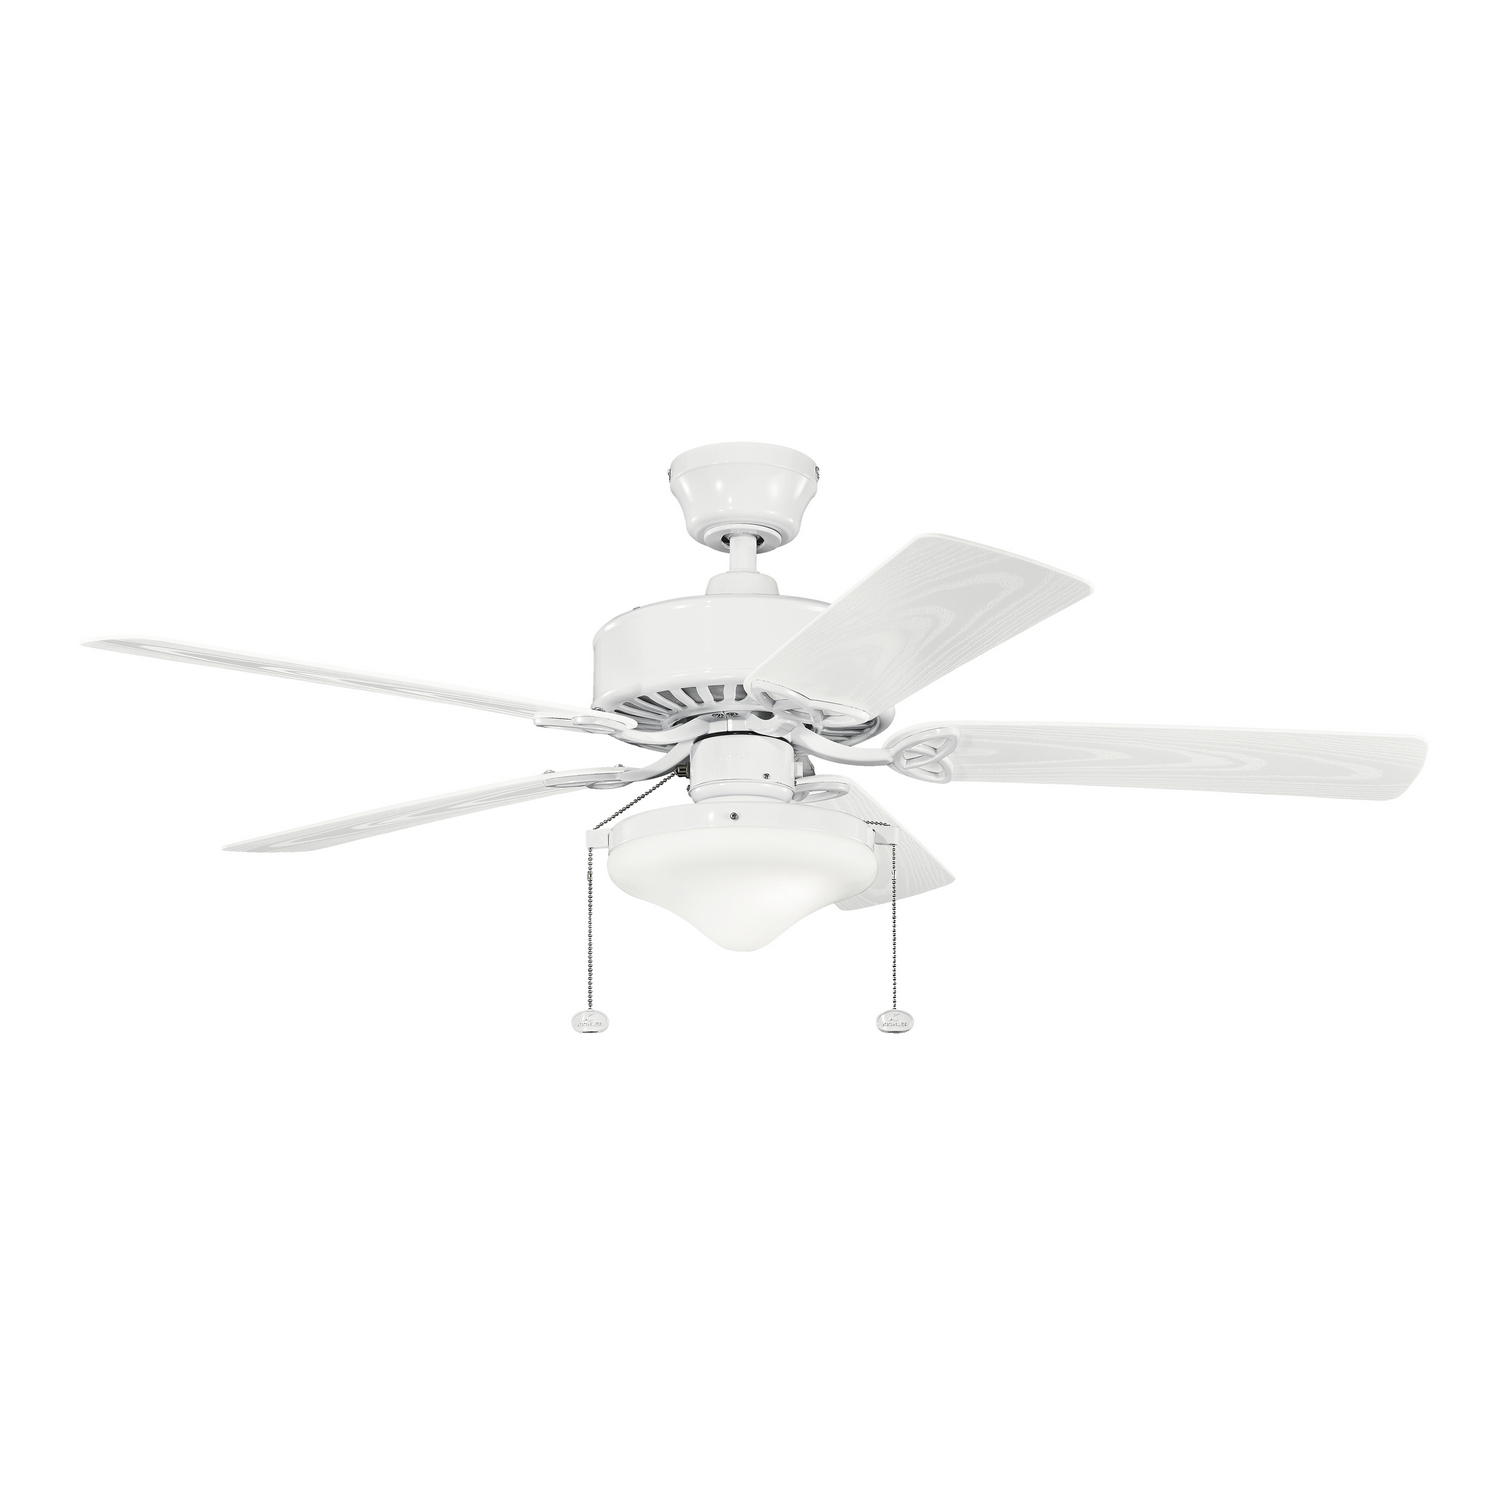 52 inchCeiling Fan from the Patio collection by Kichler 339516WH